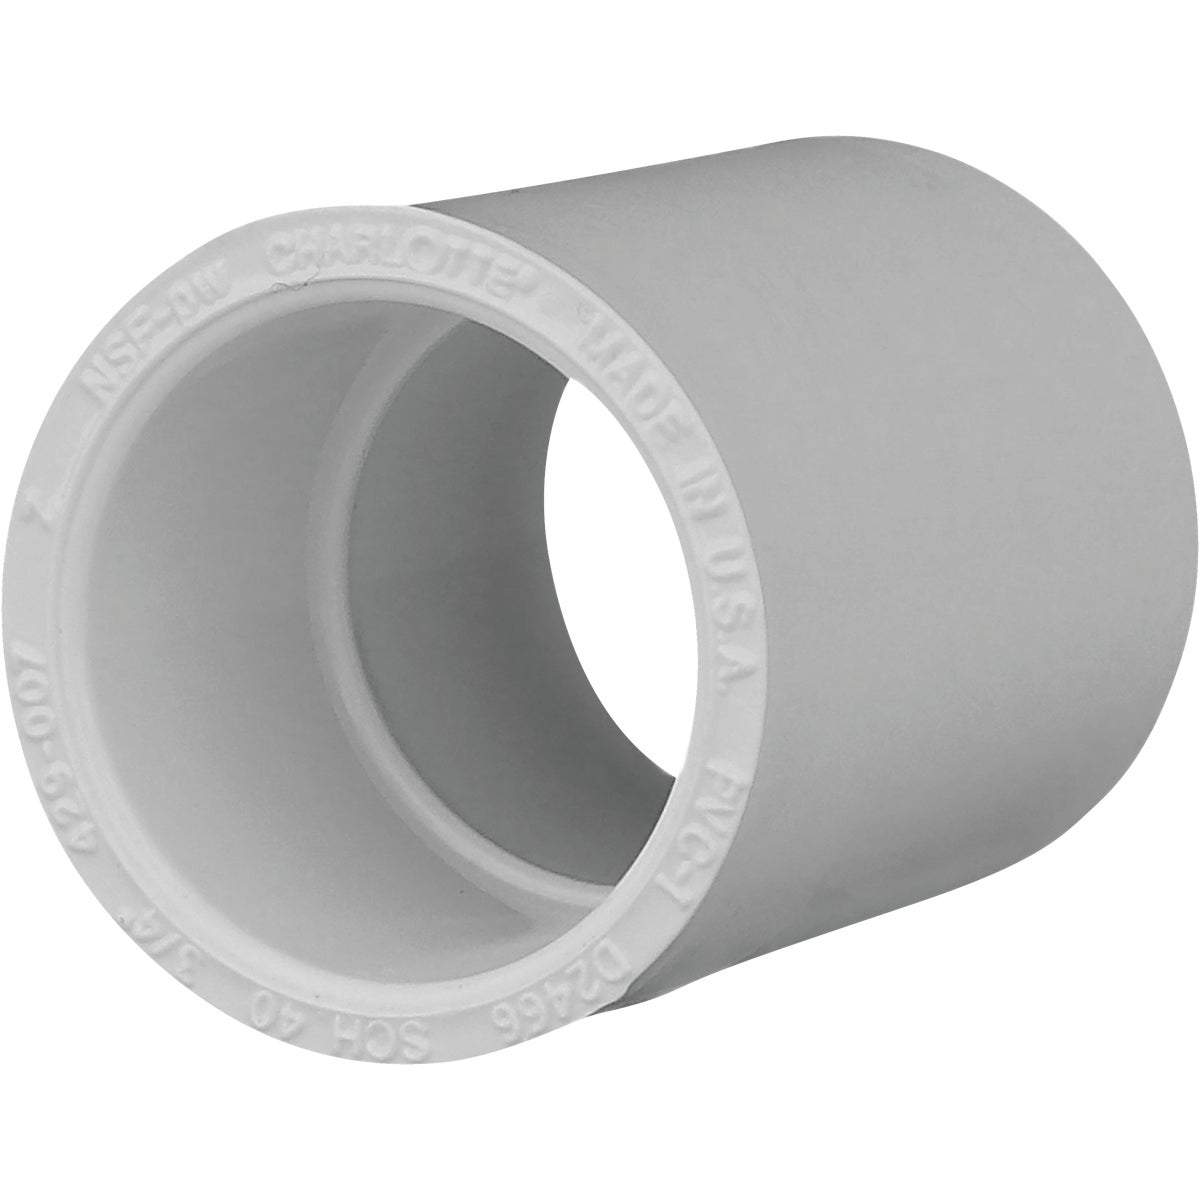 "10PK 3/4"" SCH40 PVC CPLG"